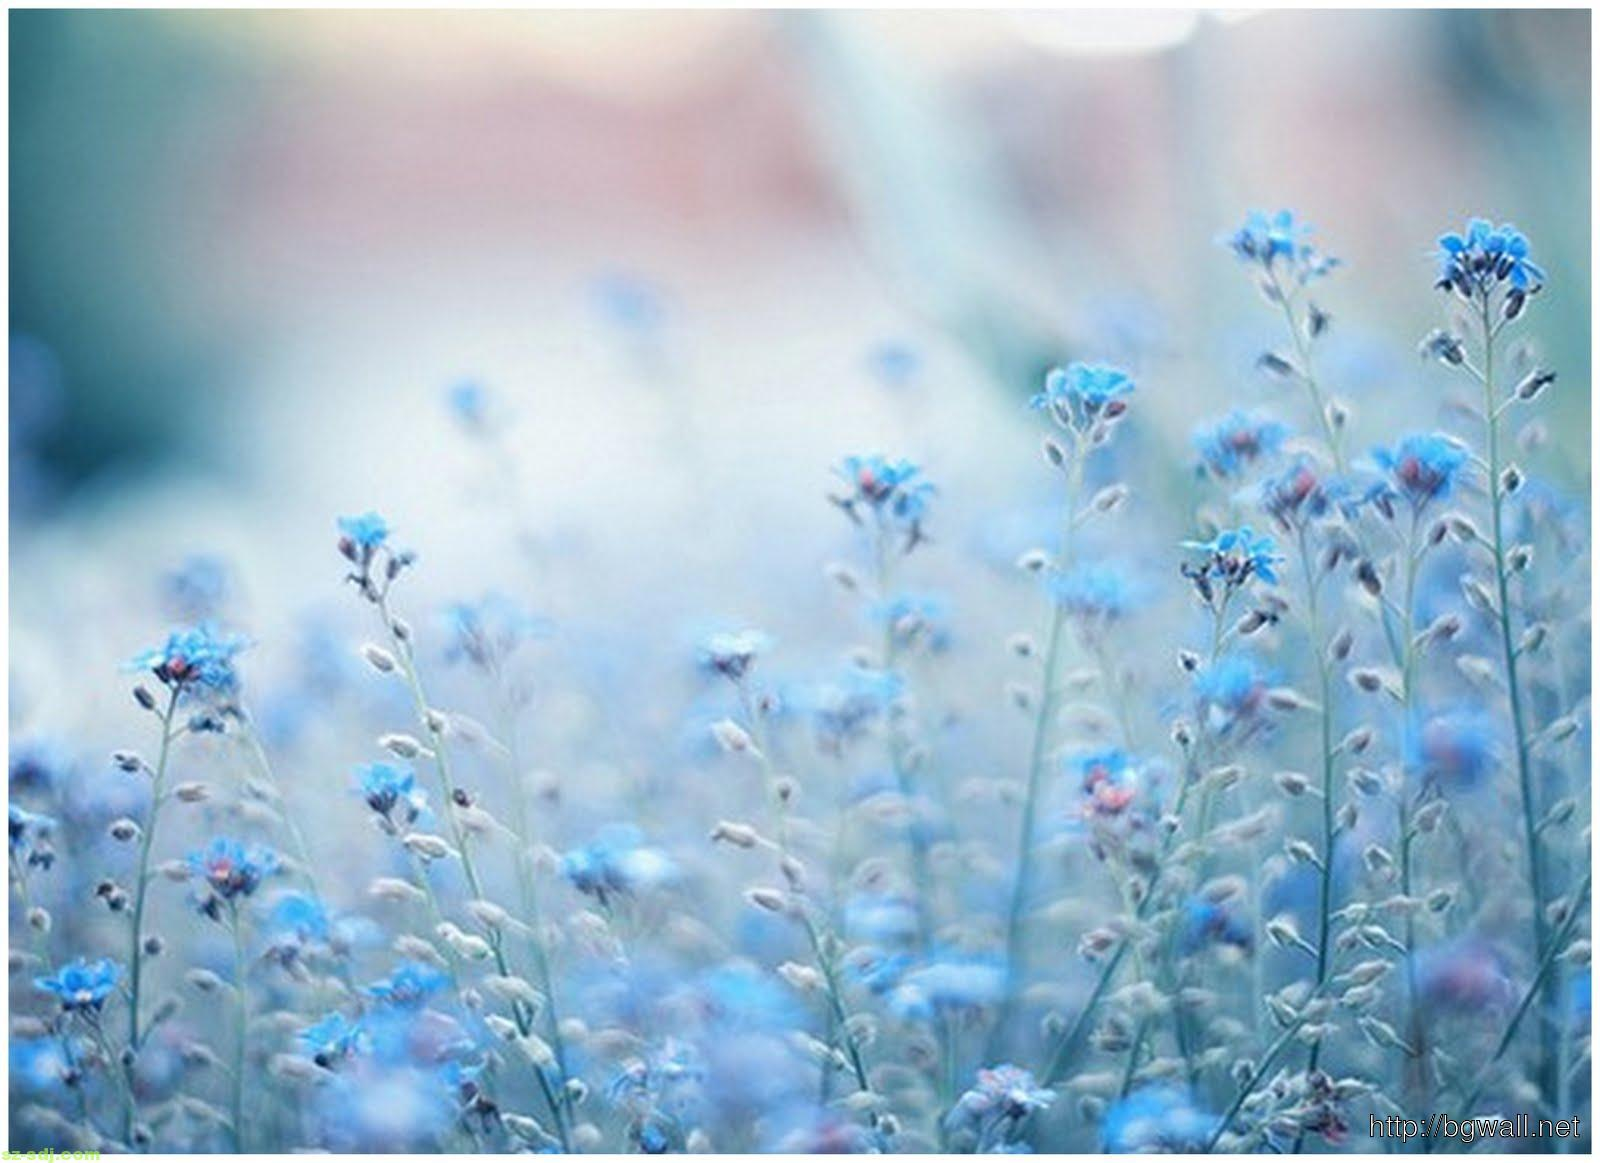 Blue Flowers Tumblr Wallpaper